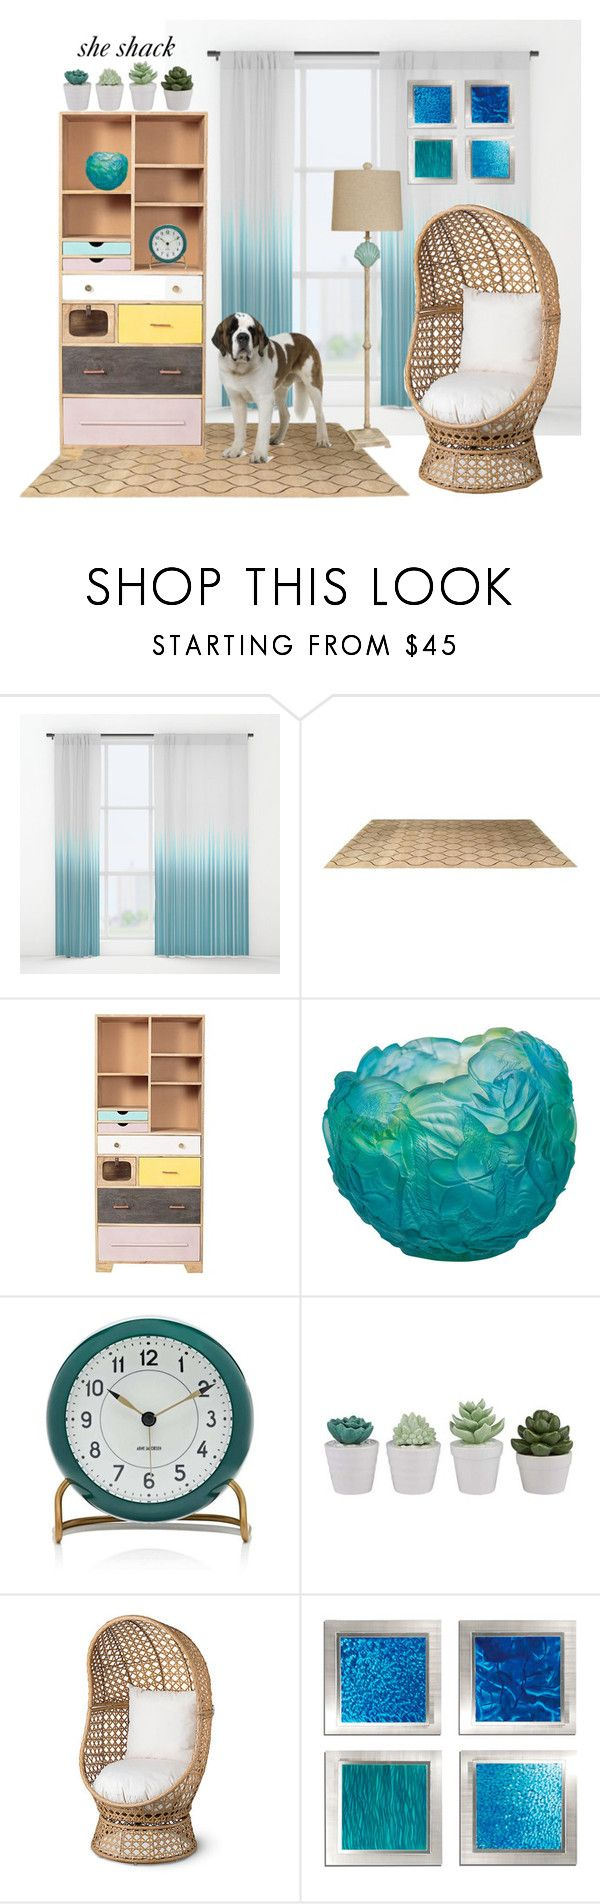 """""""PolyPresents: She Shack"""" by cigoehring ❤ liked on Polyvore featuring interior, interiors, interior design, home, home decor, interior decorating, Daum, Carl Mertens, Improvements and Frontgate"""